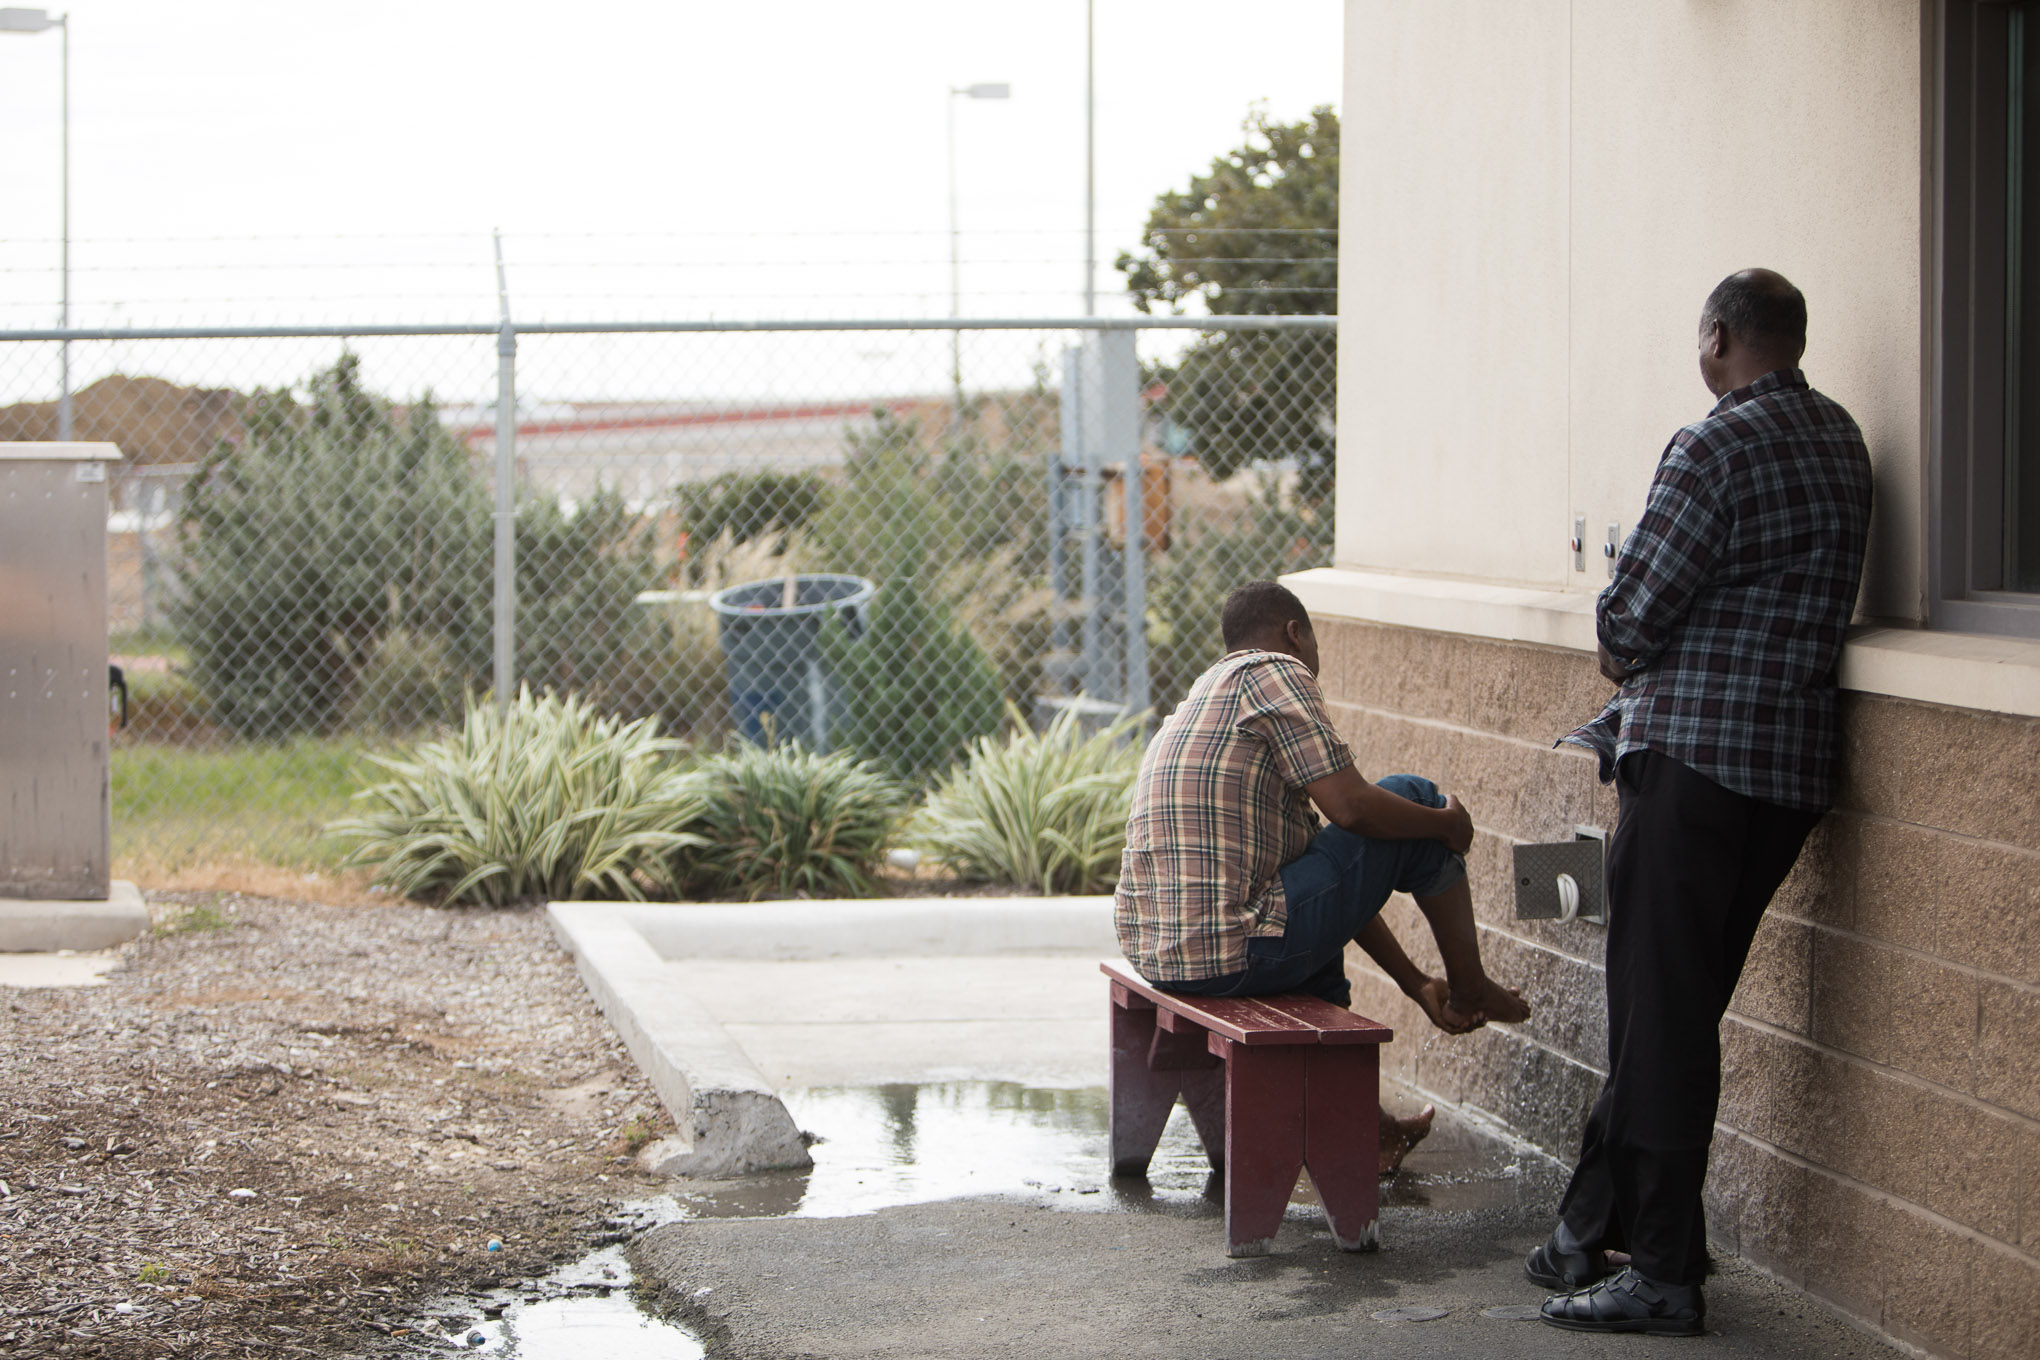 Men of the Muslim faith wash their feet on the side of the facility.